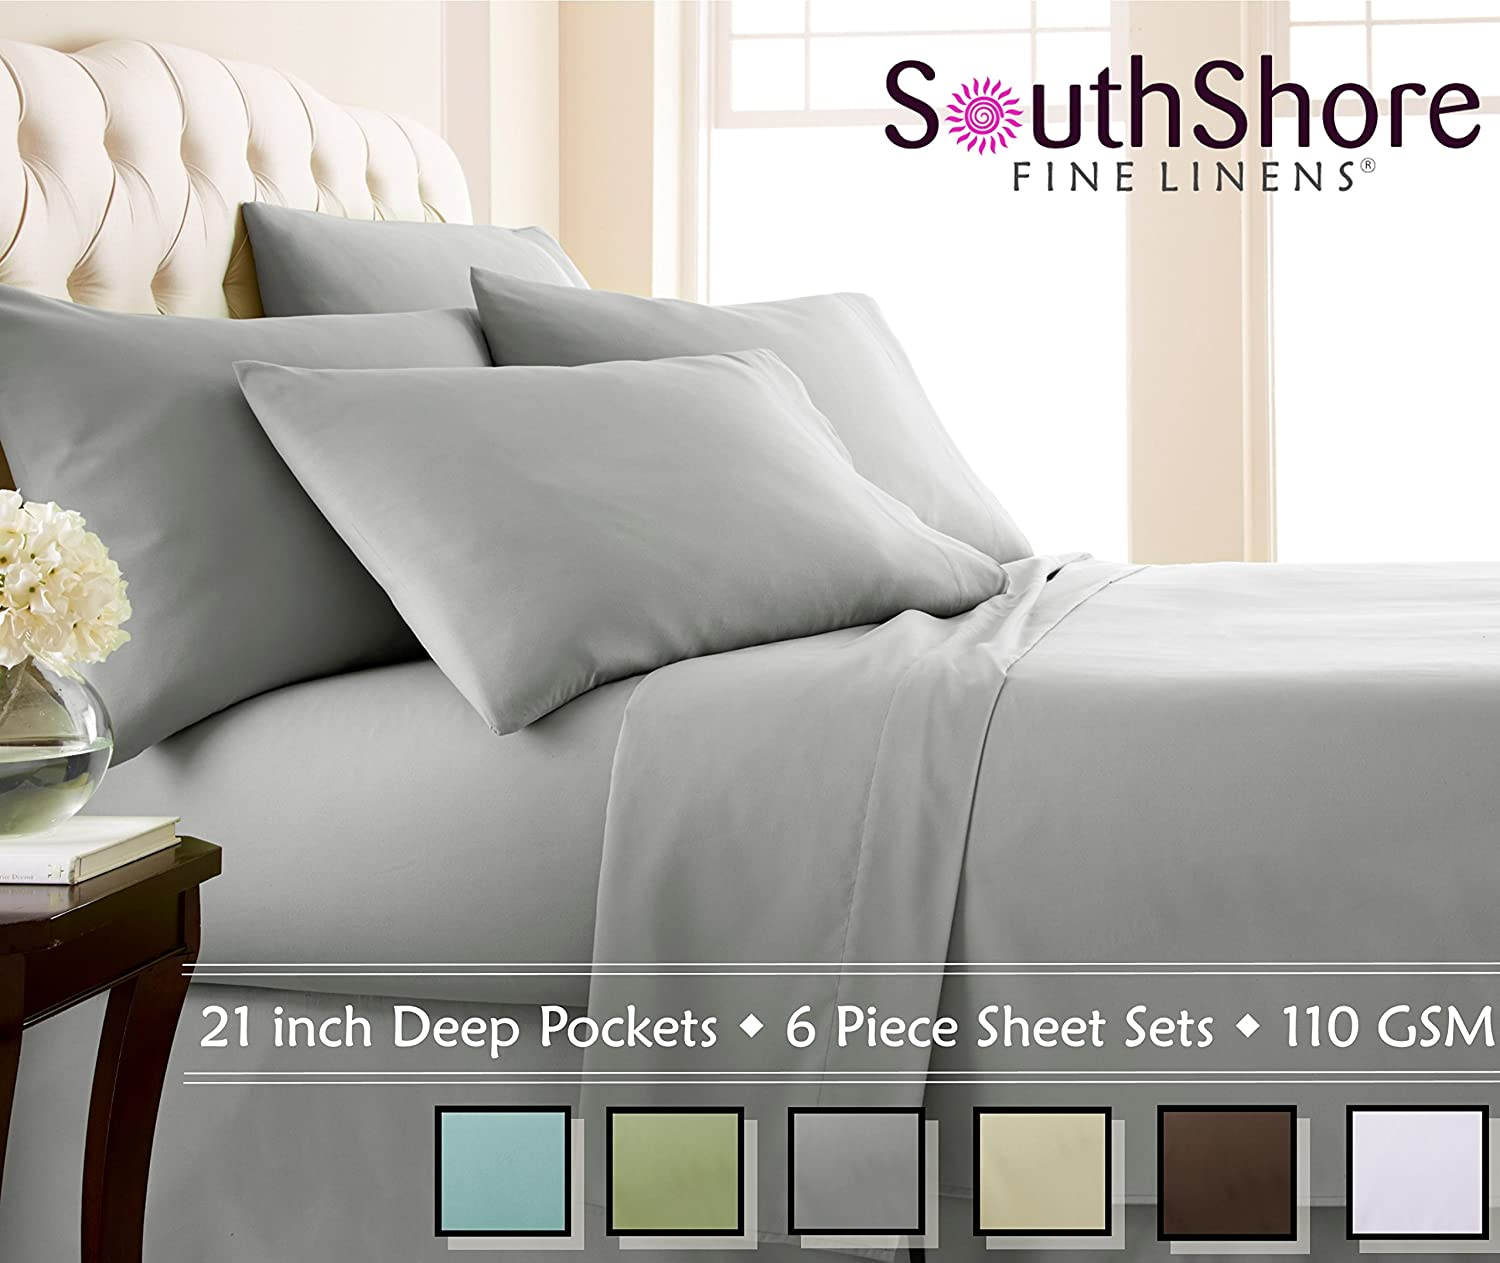 Top 10 Best Linen Sheets